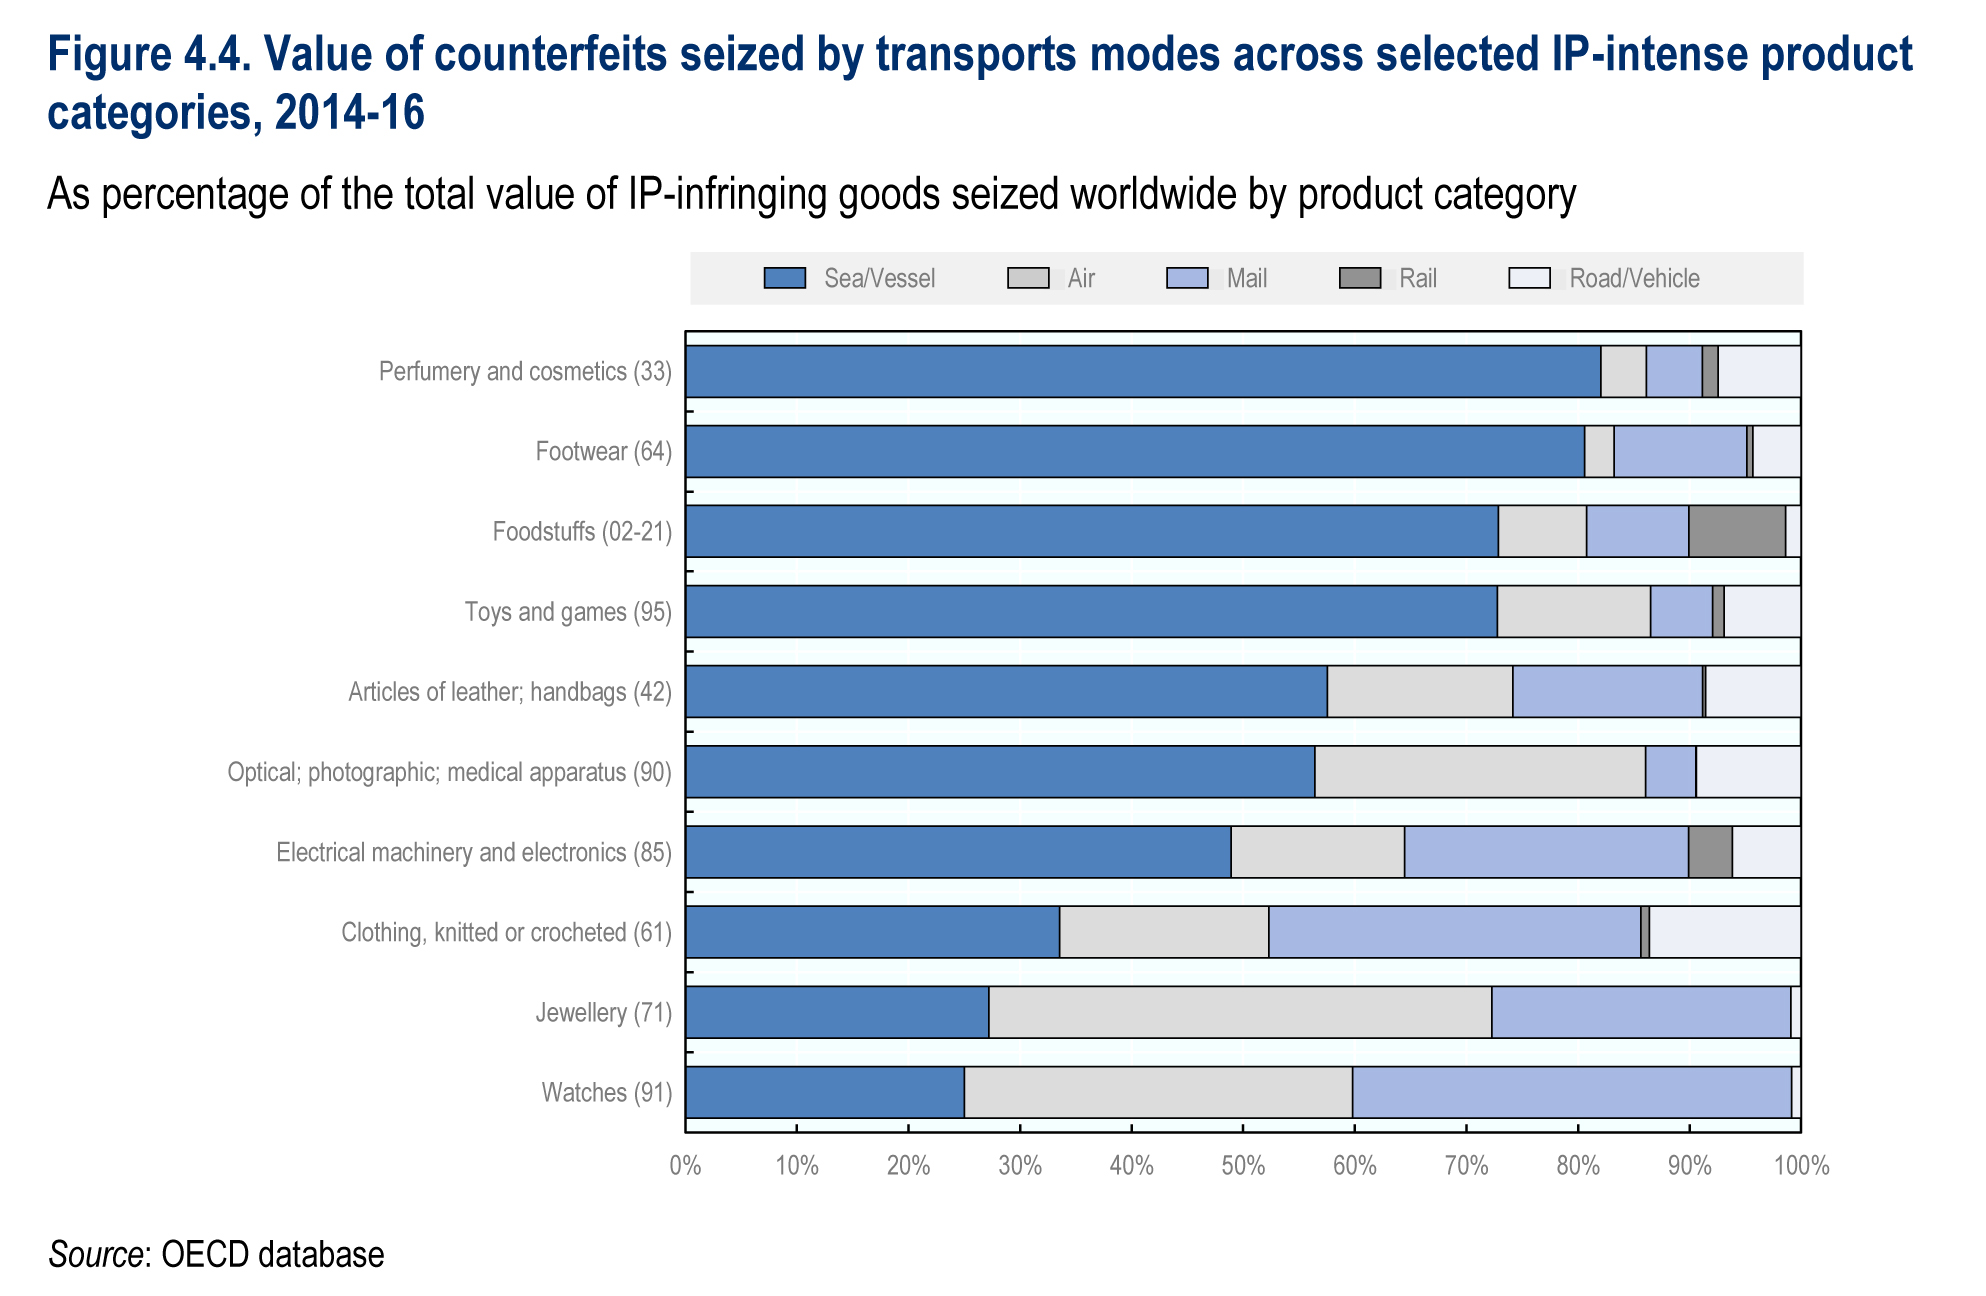 Value of counterfeits seized by transports modes across selected IP-intense product categories, 2014-16